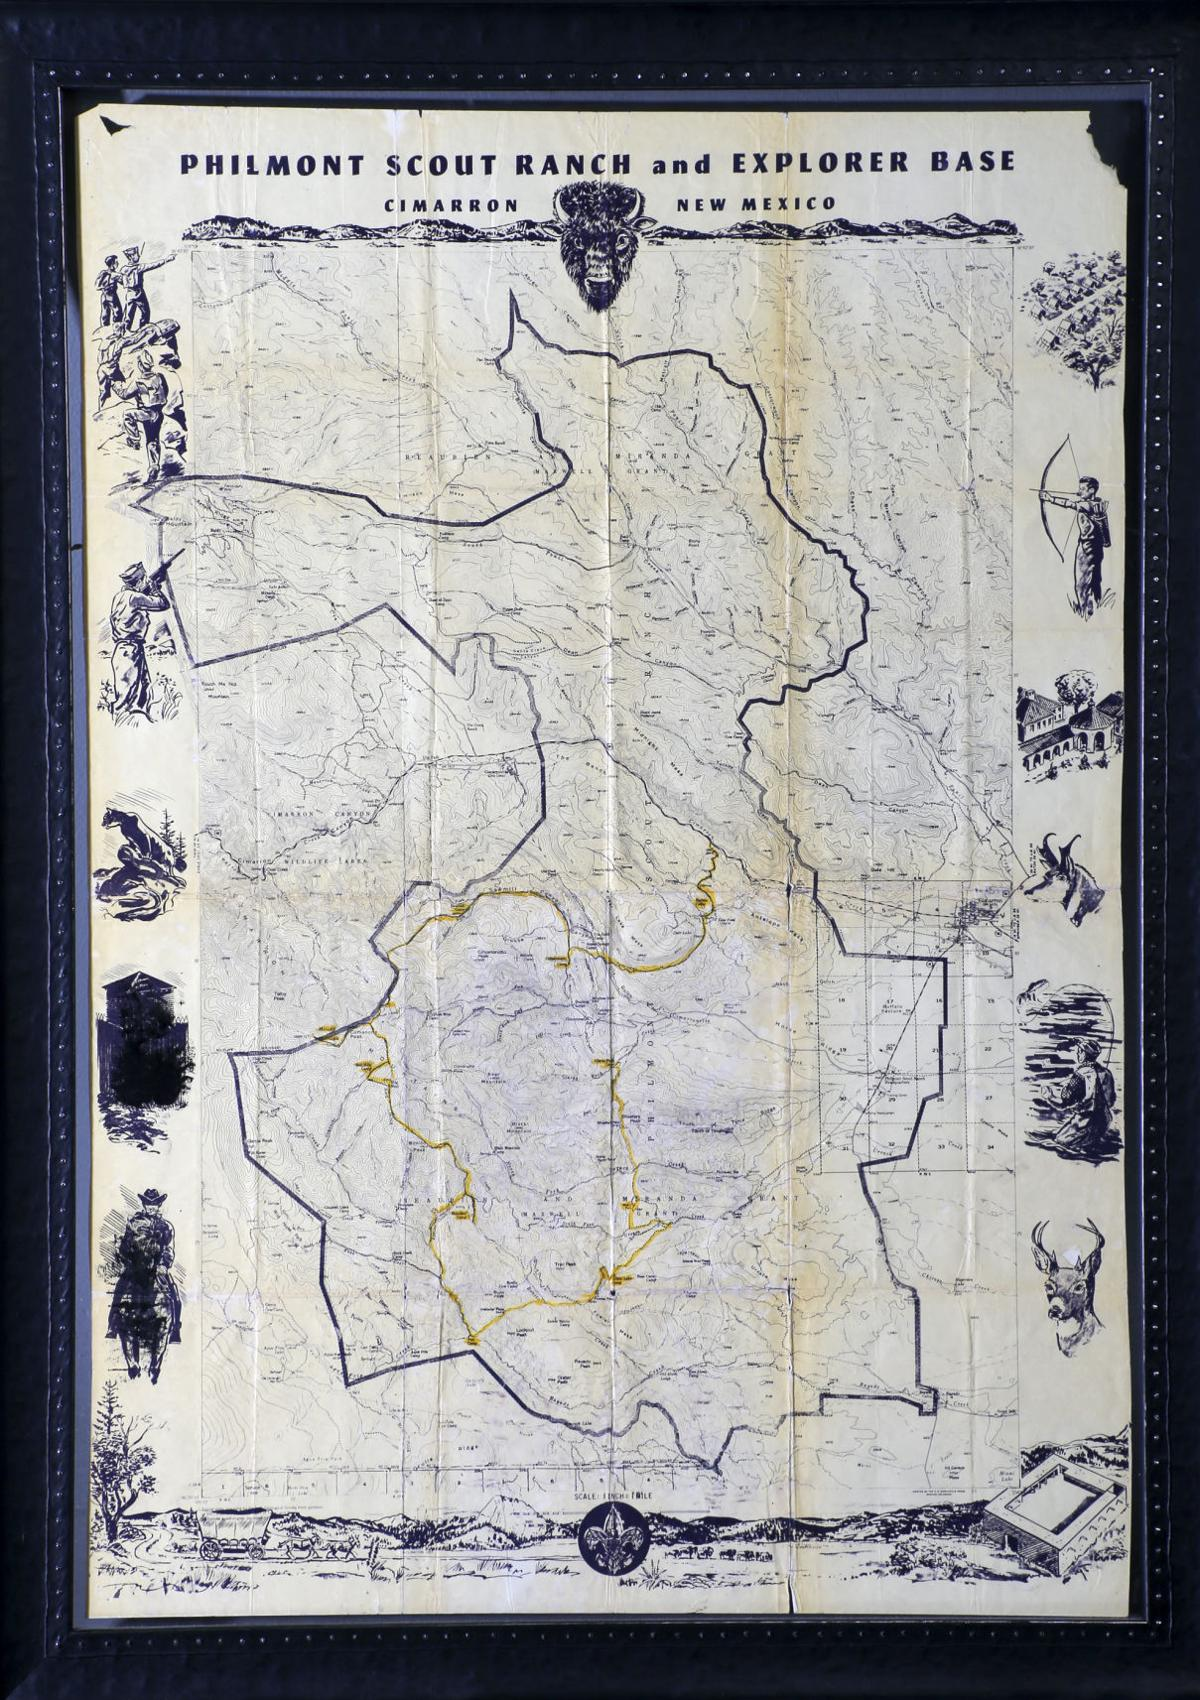 Philmont New Mexico Map.John Klein 50 Year Old Journal From Philmont Scout Ranch A Reminder